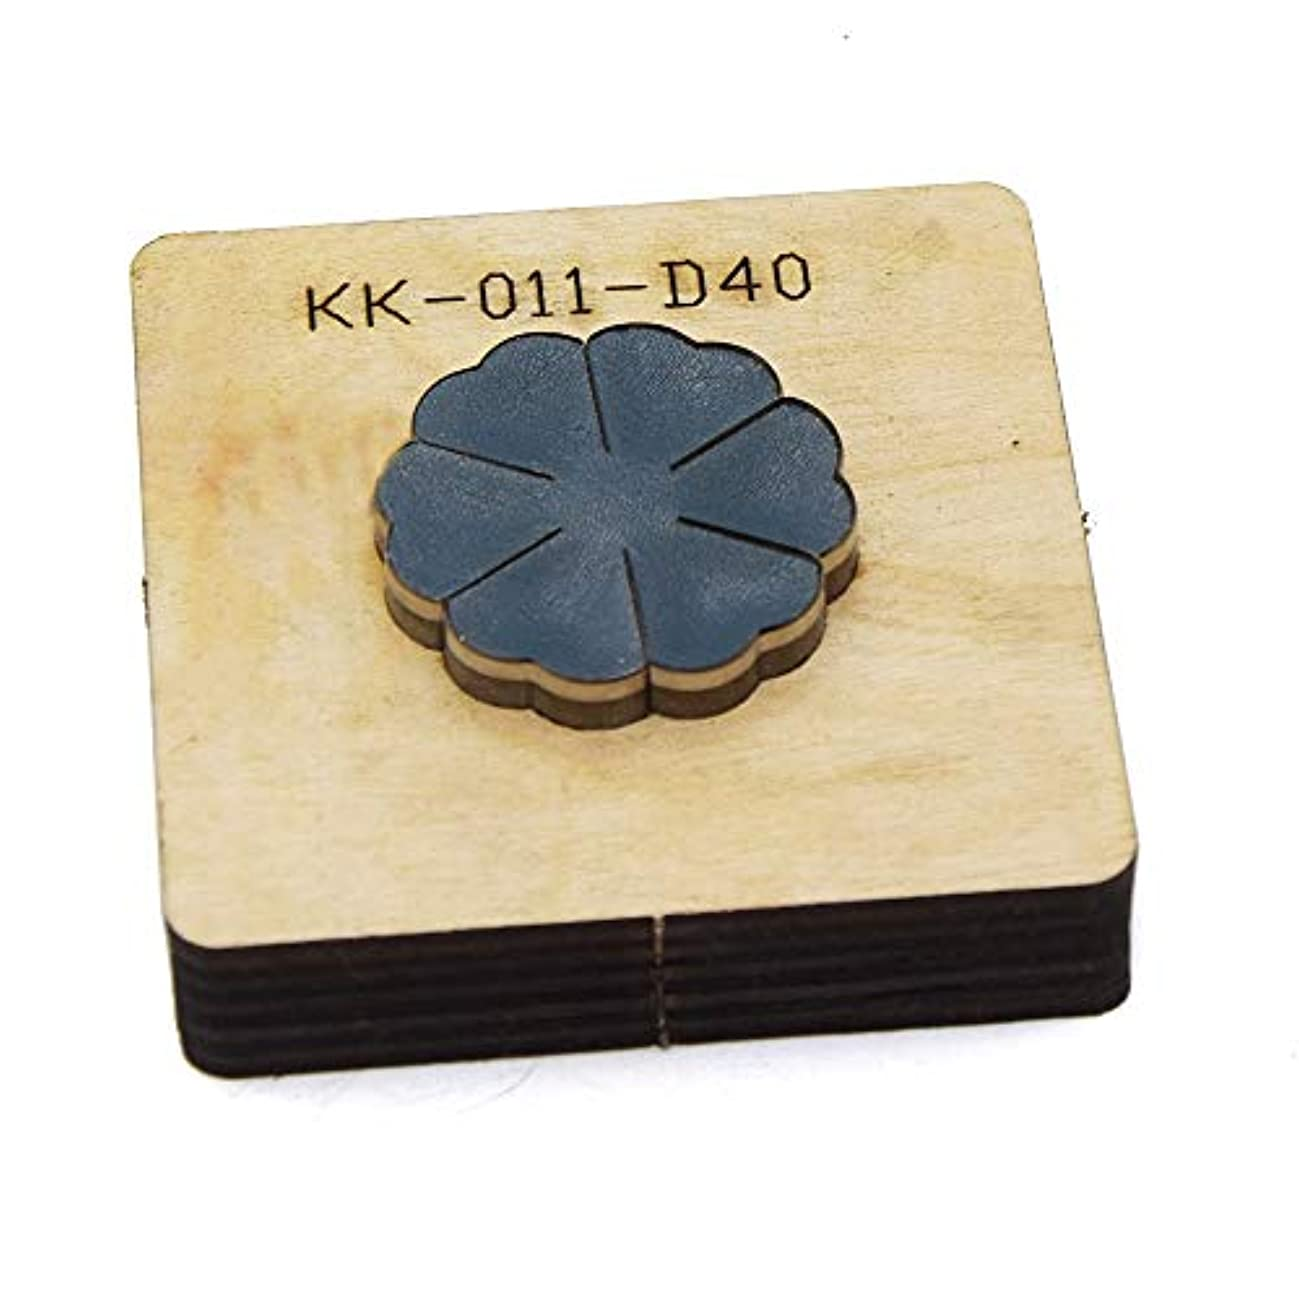 BOERNISEN Leather Flower ized Leather Cutting die Handicraft Tool Punch Cutter Mold DIY Paper Laser Knife(Style8)